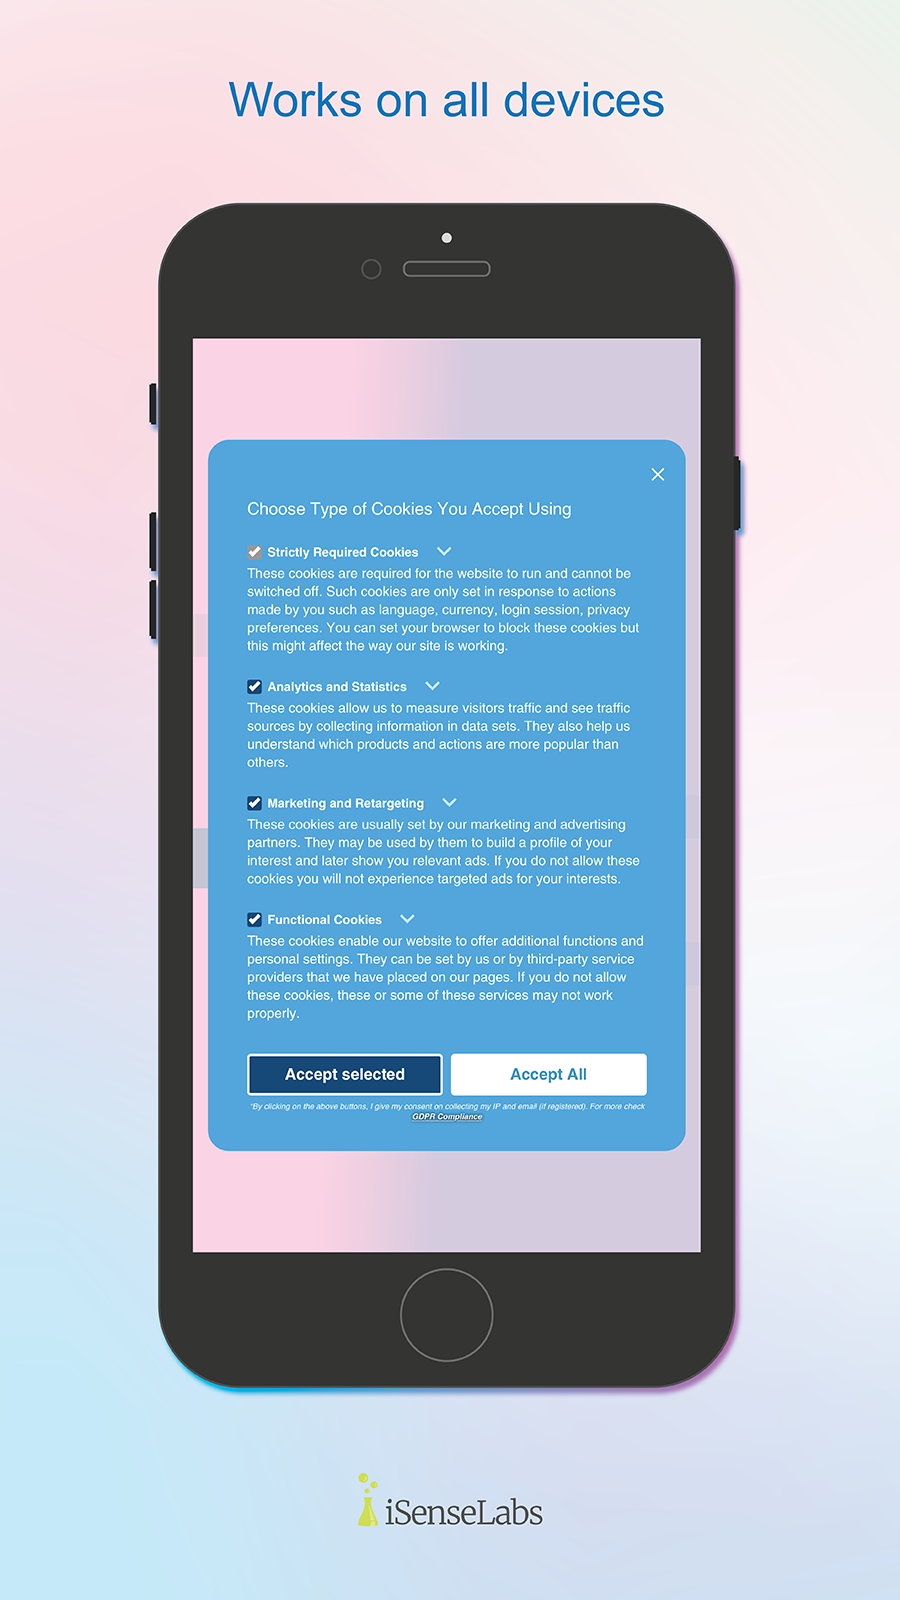 GDPR/CCPA - Works on all devices